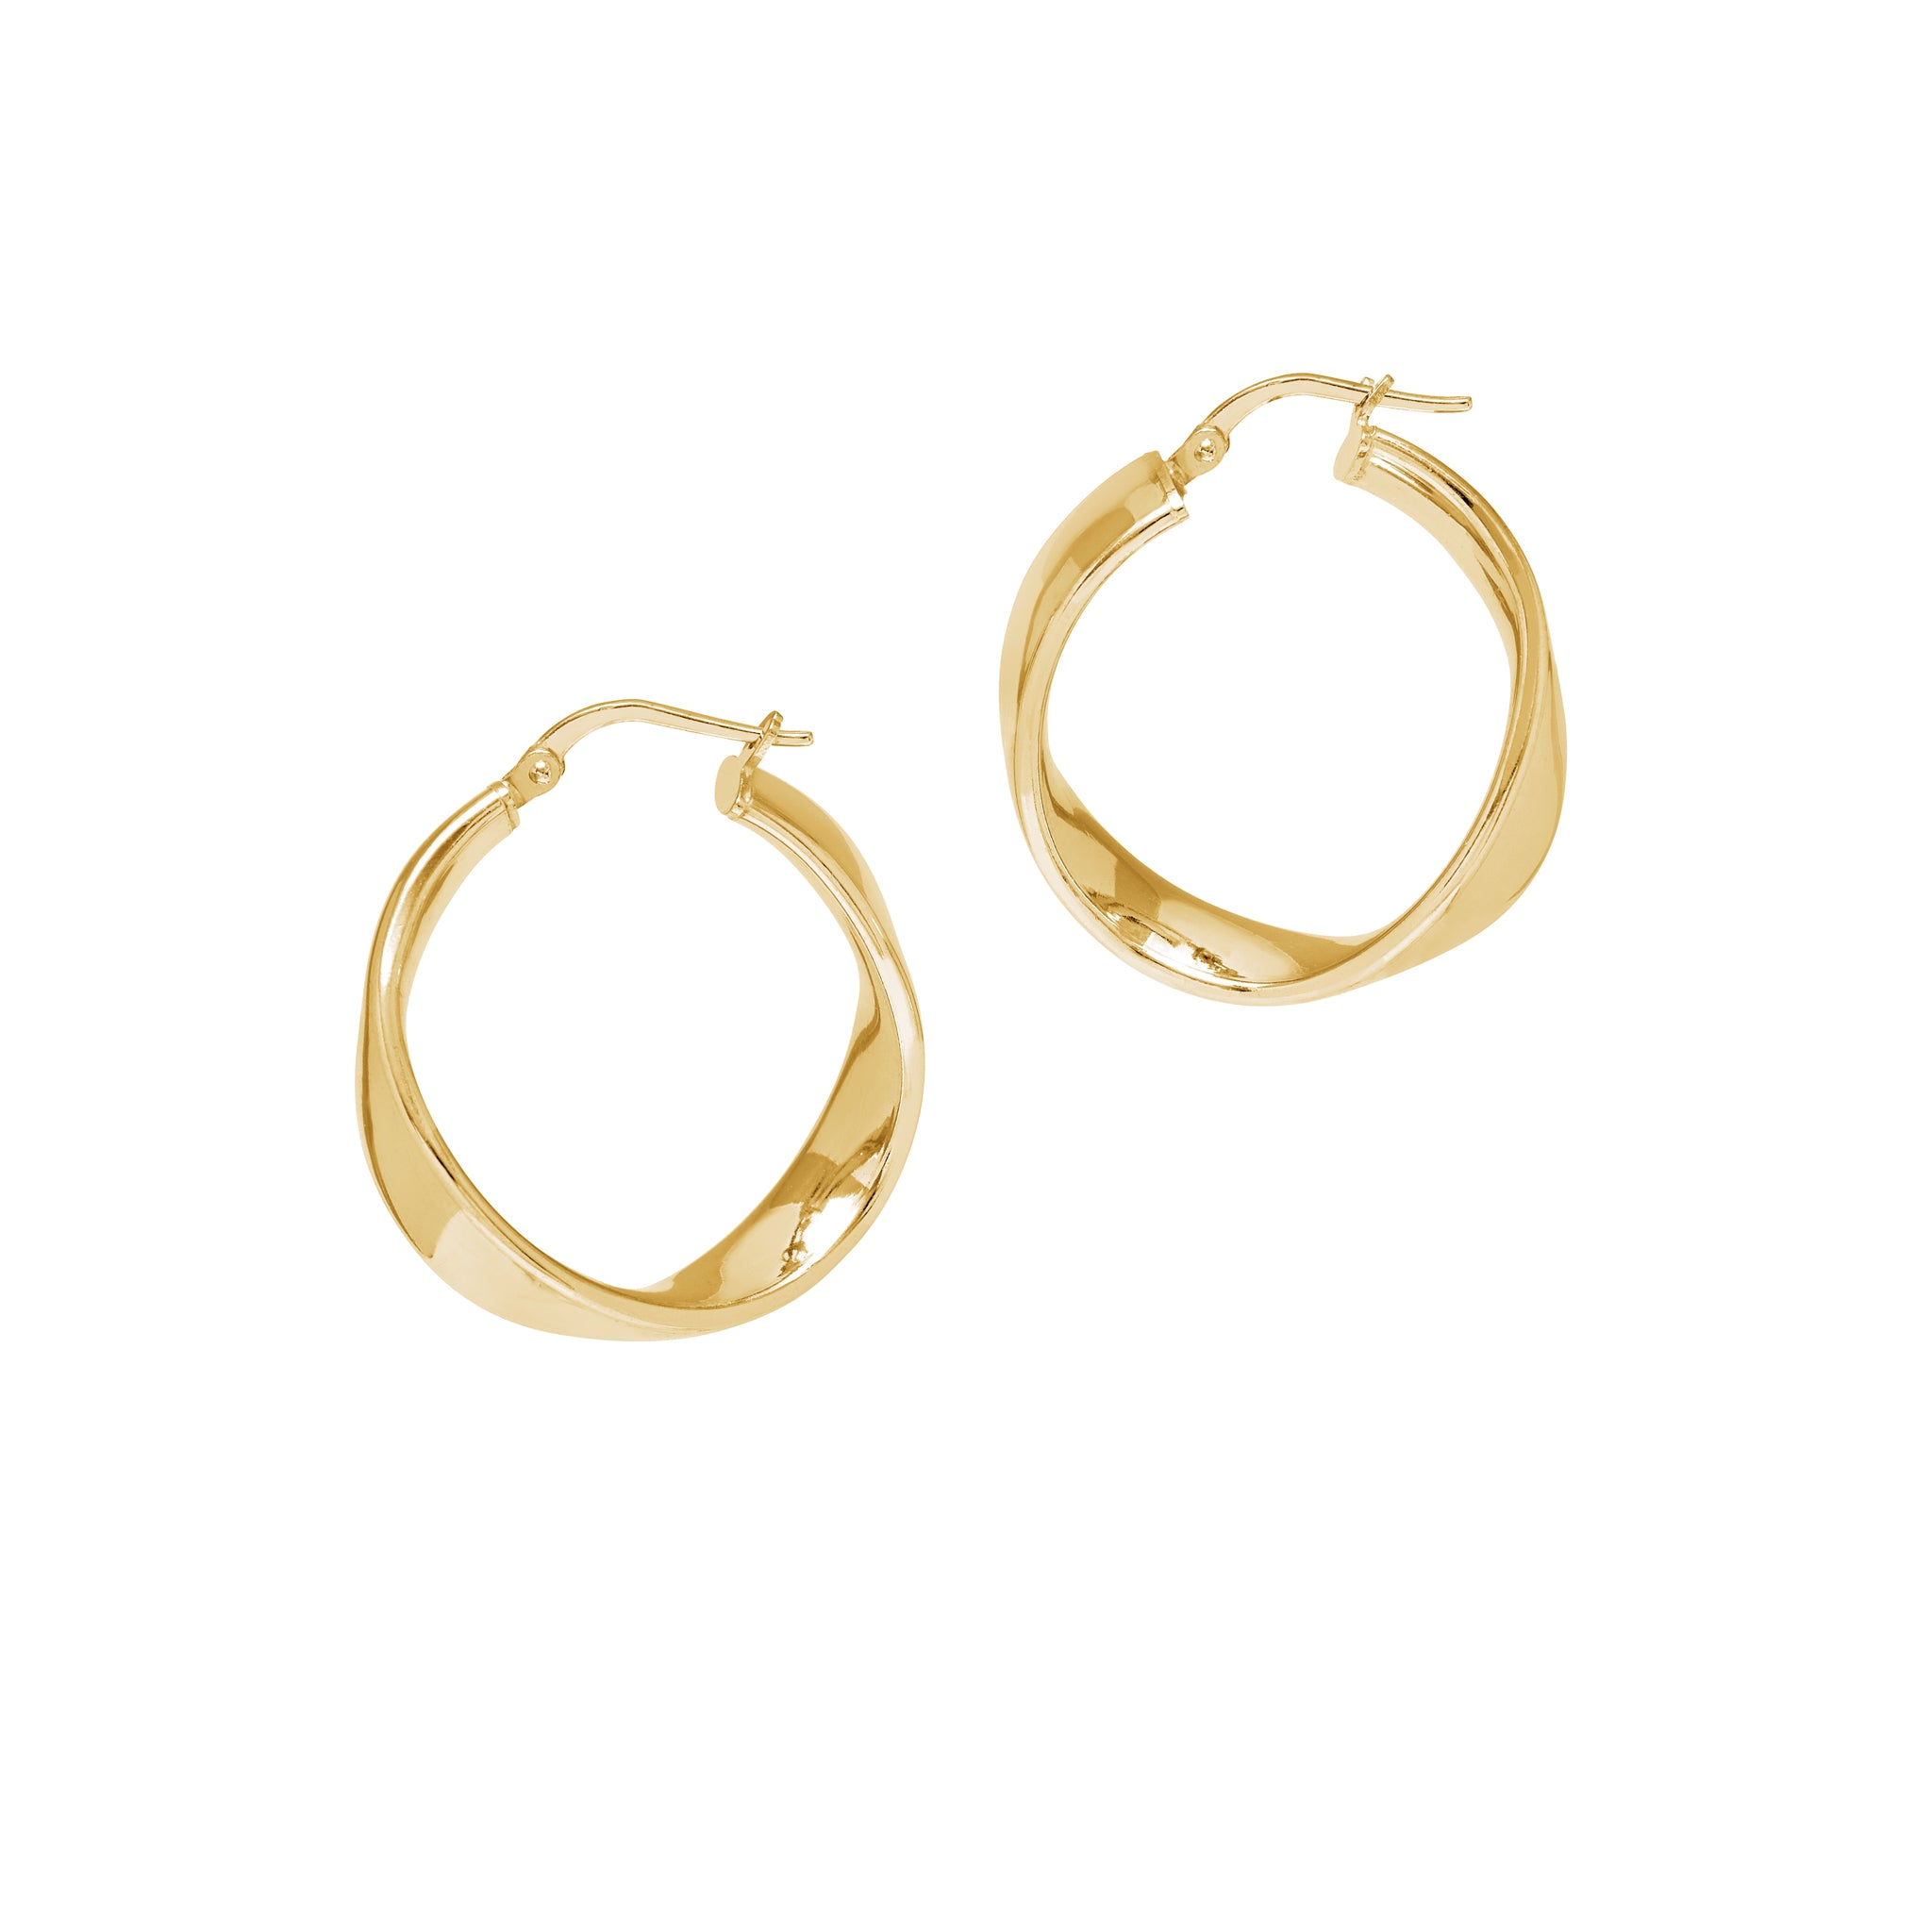 La WAVE CUFF - Gold - The Hoop Station 925 Sterling Silver Hoop Earrings Gold Huggies